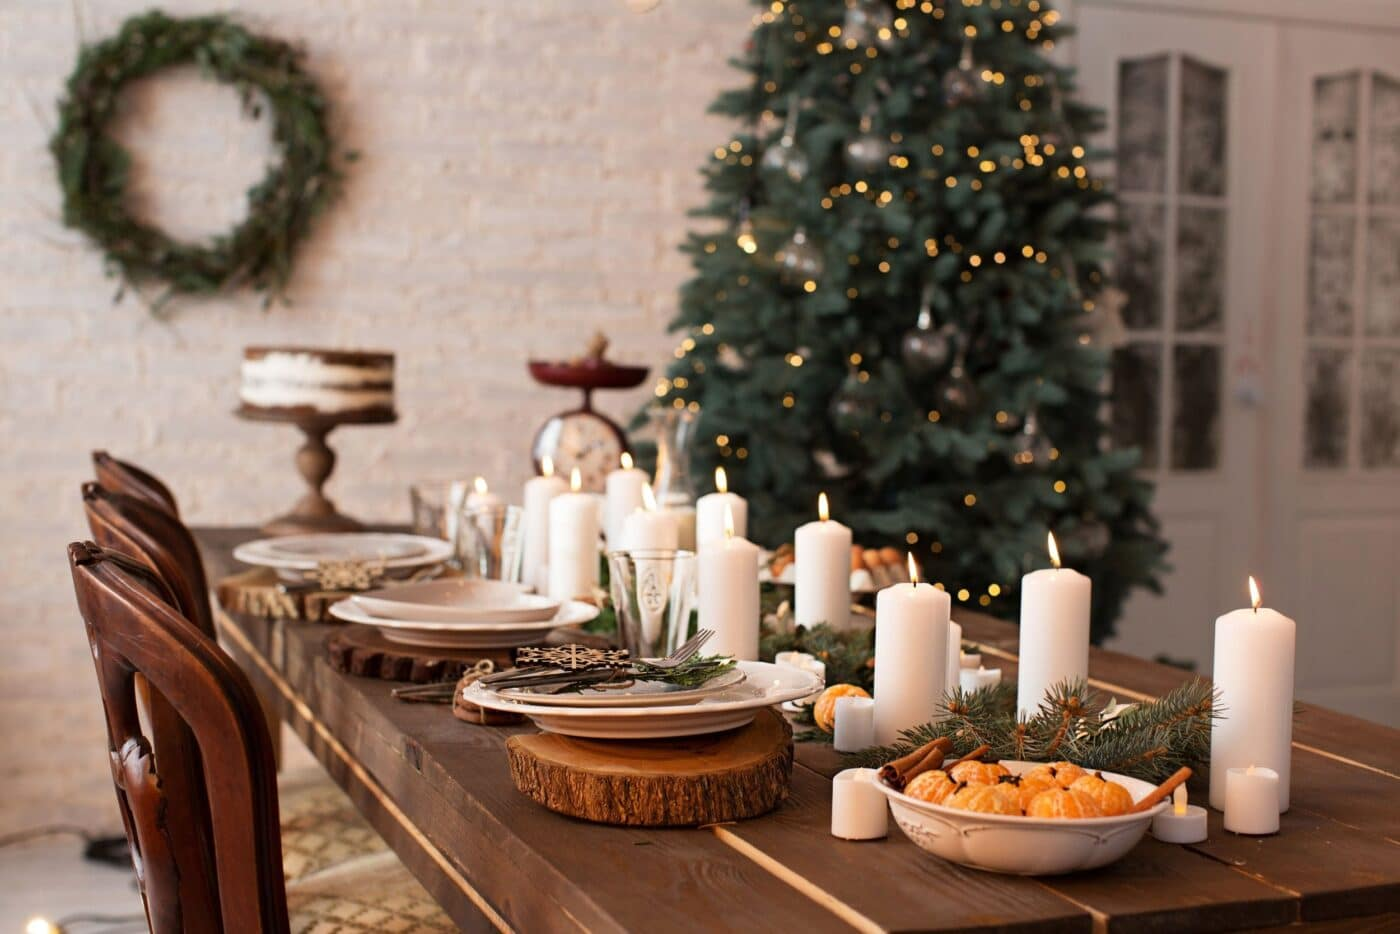 Image of navidad 9 in The most creative Christmas decoration ideas for your kitchen - Cosentino